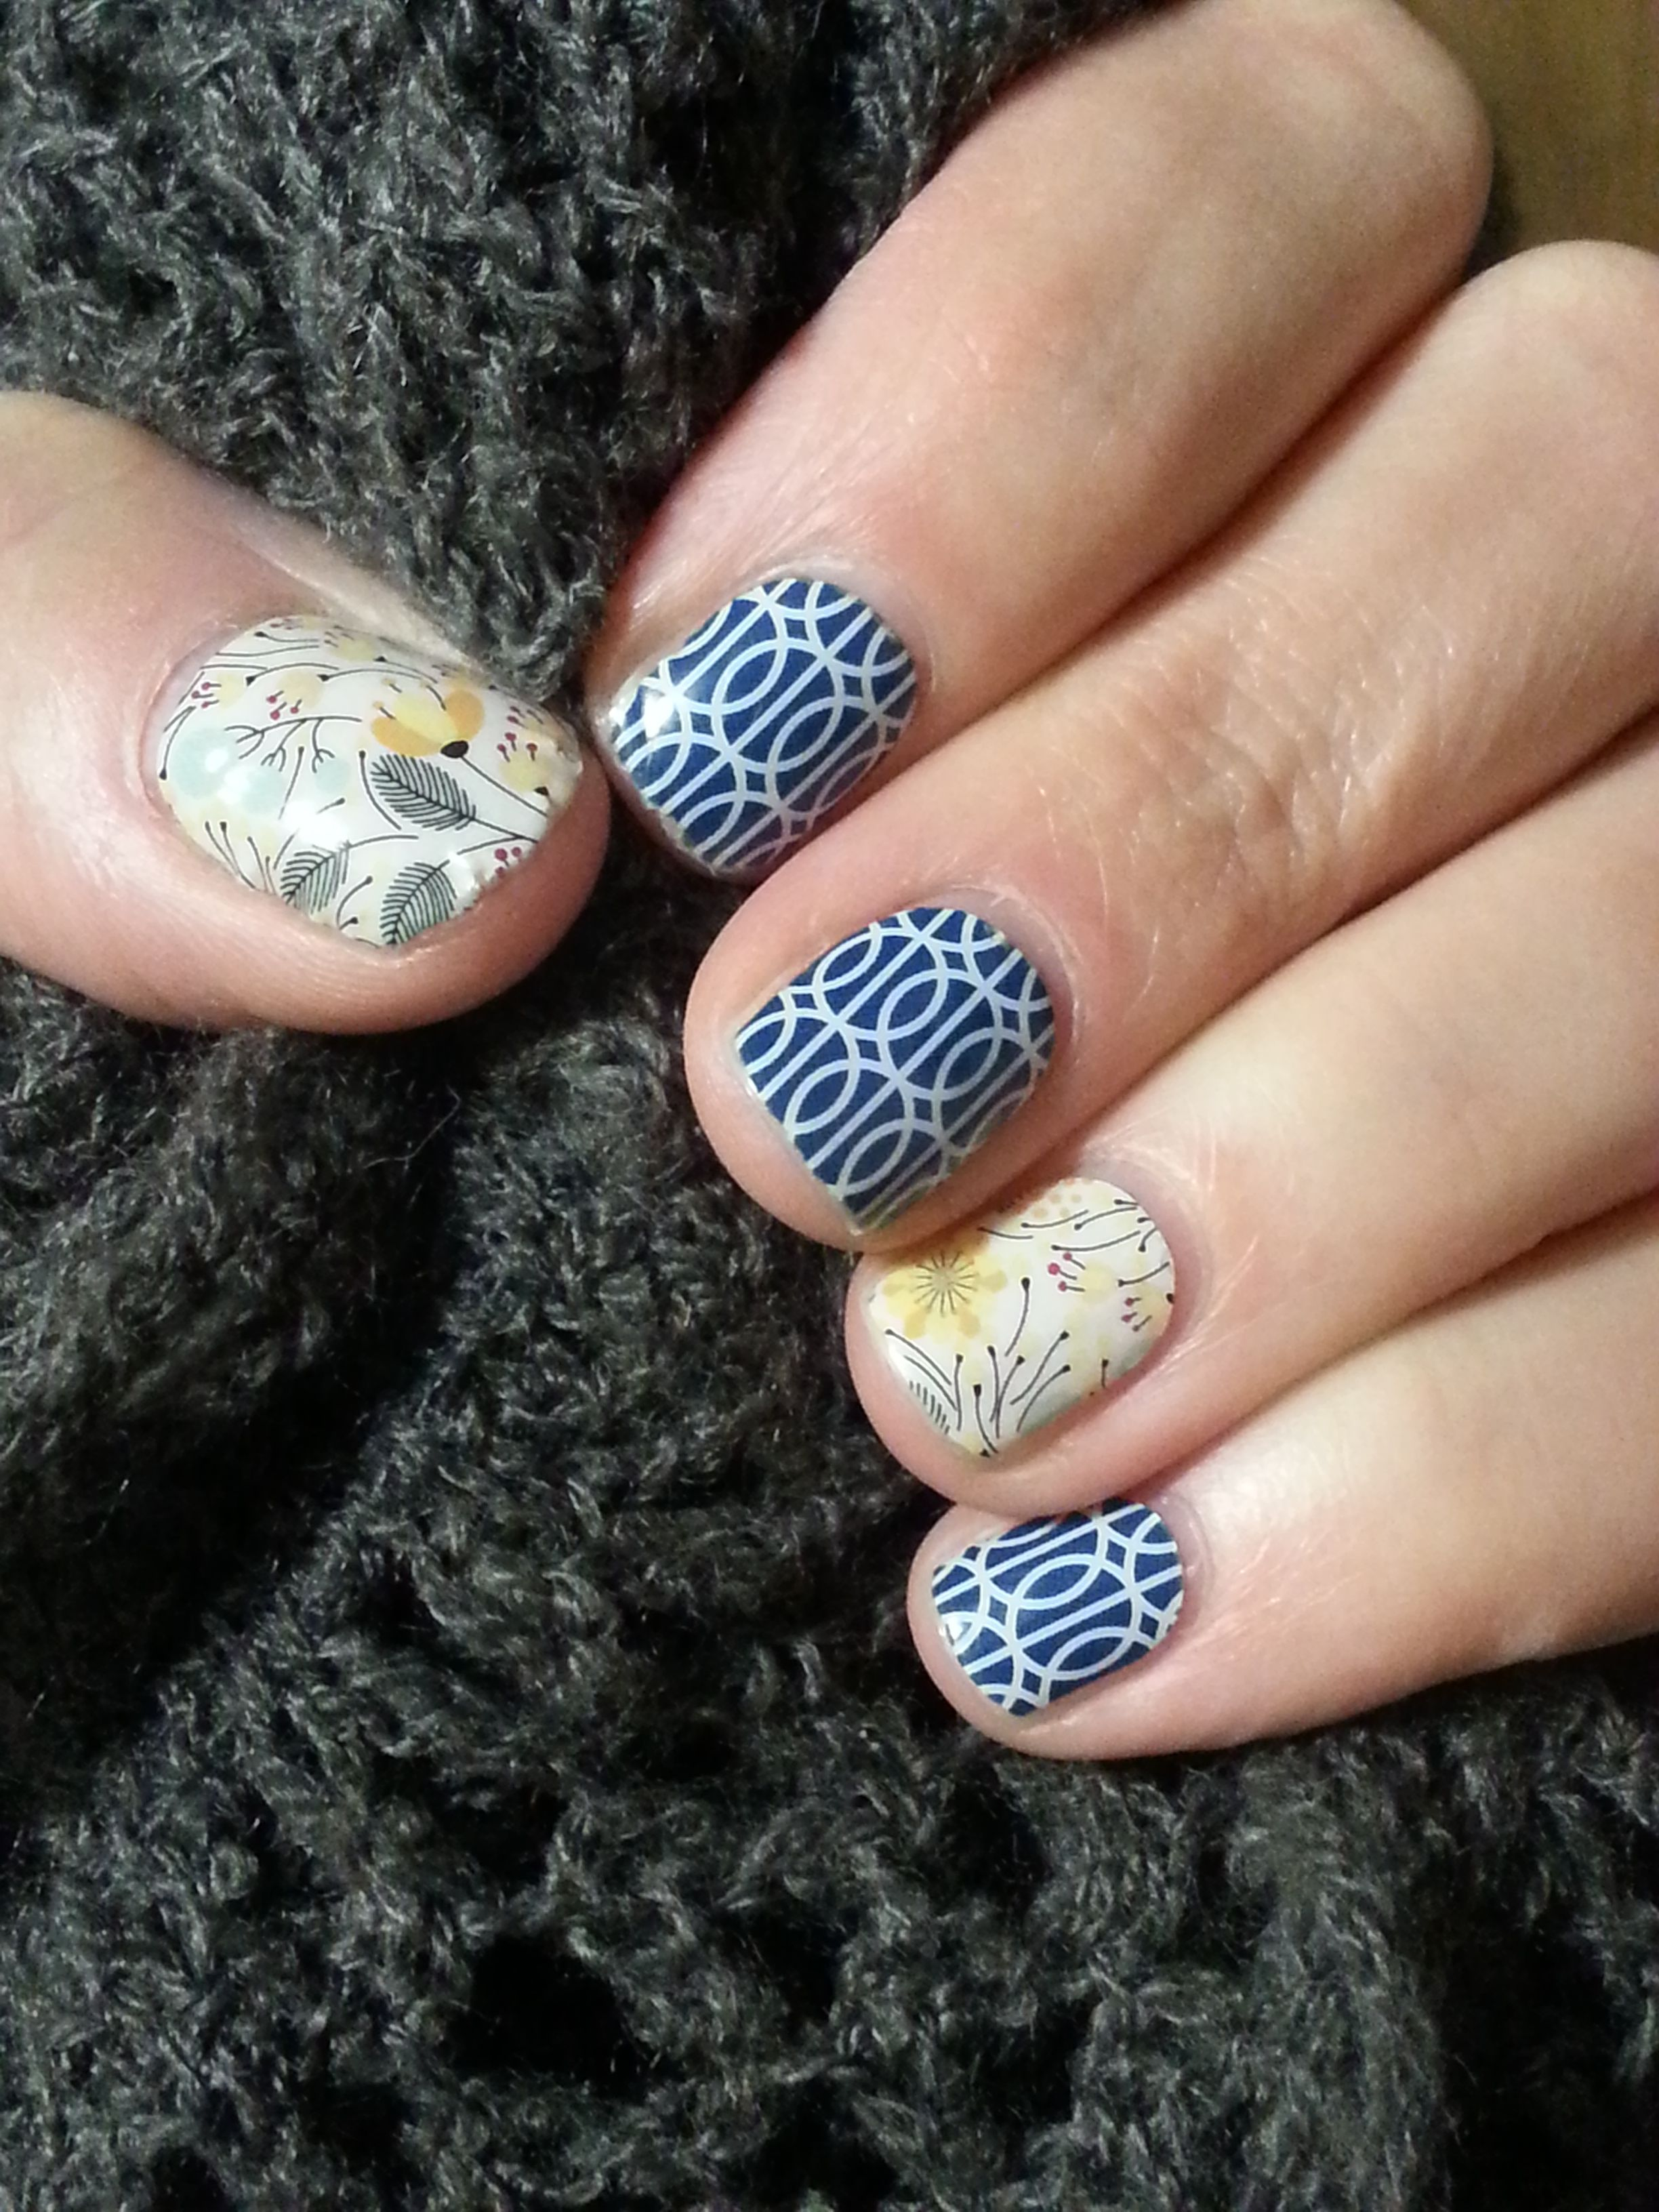 Jamberry nail wraps are an easy way to have fashionable nail art for a lot less! Pictured here is Mad Mod and Sweet Whimsy. http://tfreitag.jamberrynails.net #Jamberry